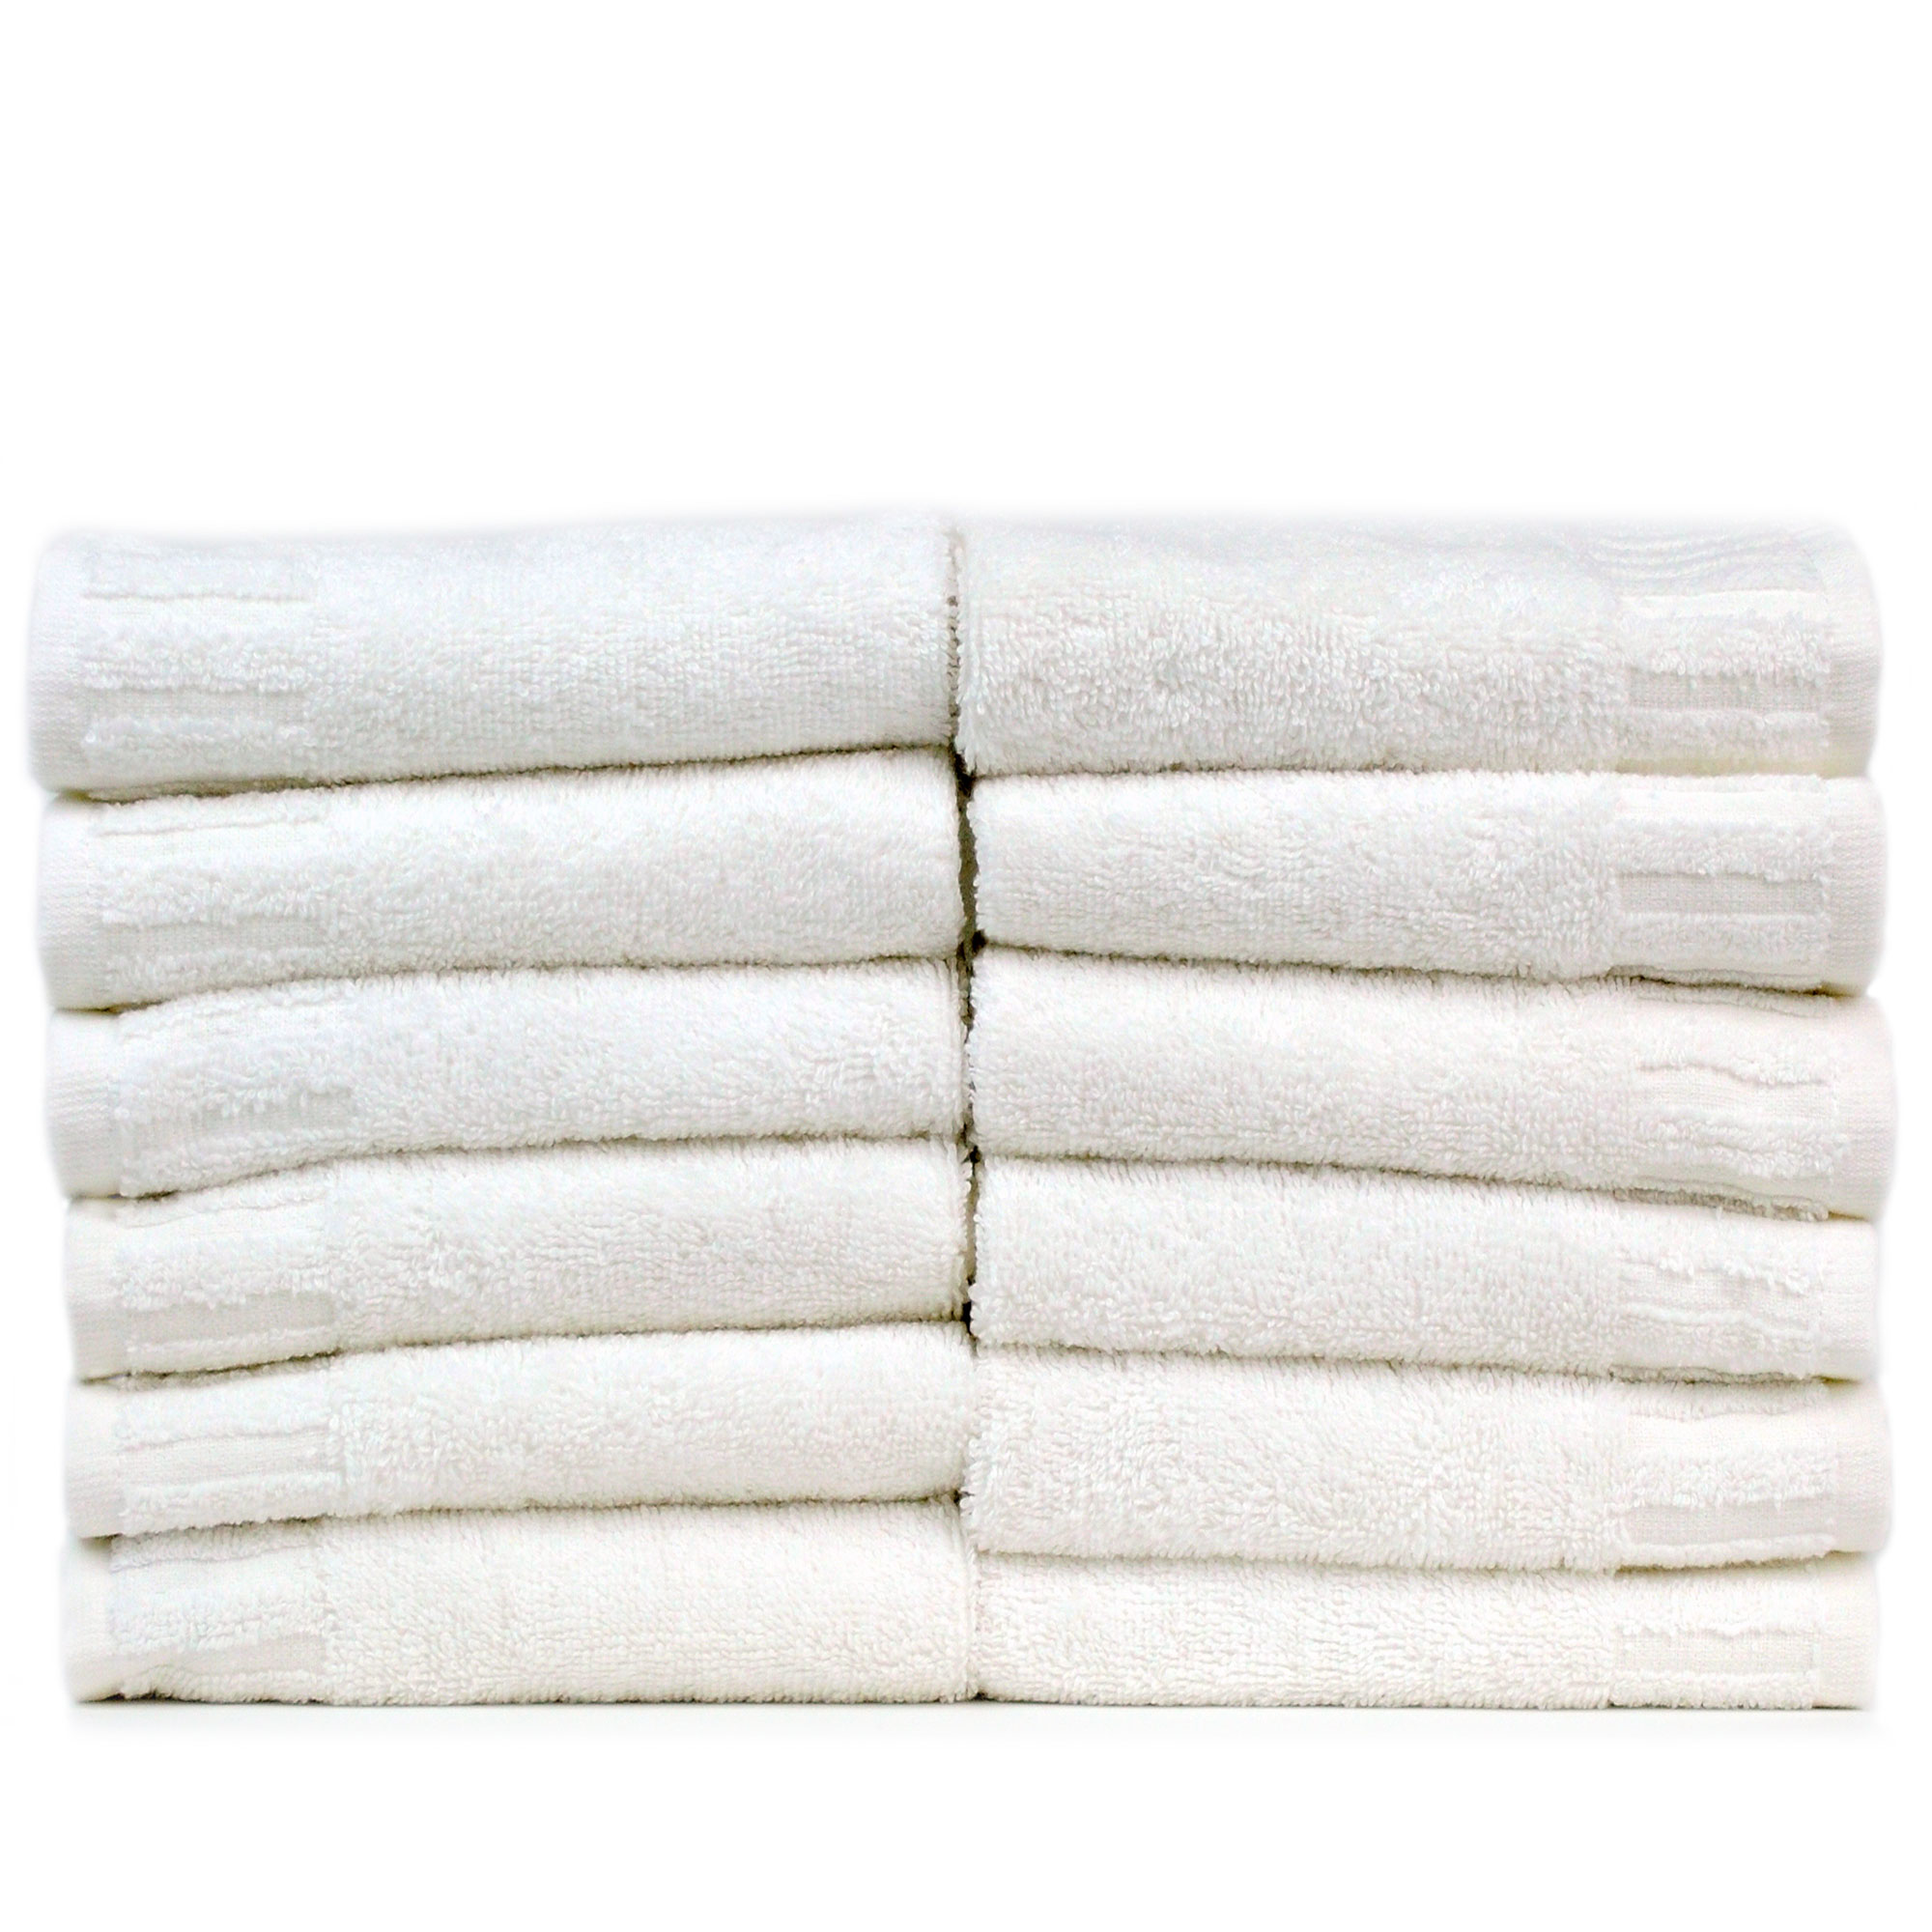 BC BARE COTTON Luxury Hotel & Spa Towel 100% Turkish Cotton Washcloths - White - Piano - Set of 6